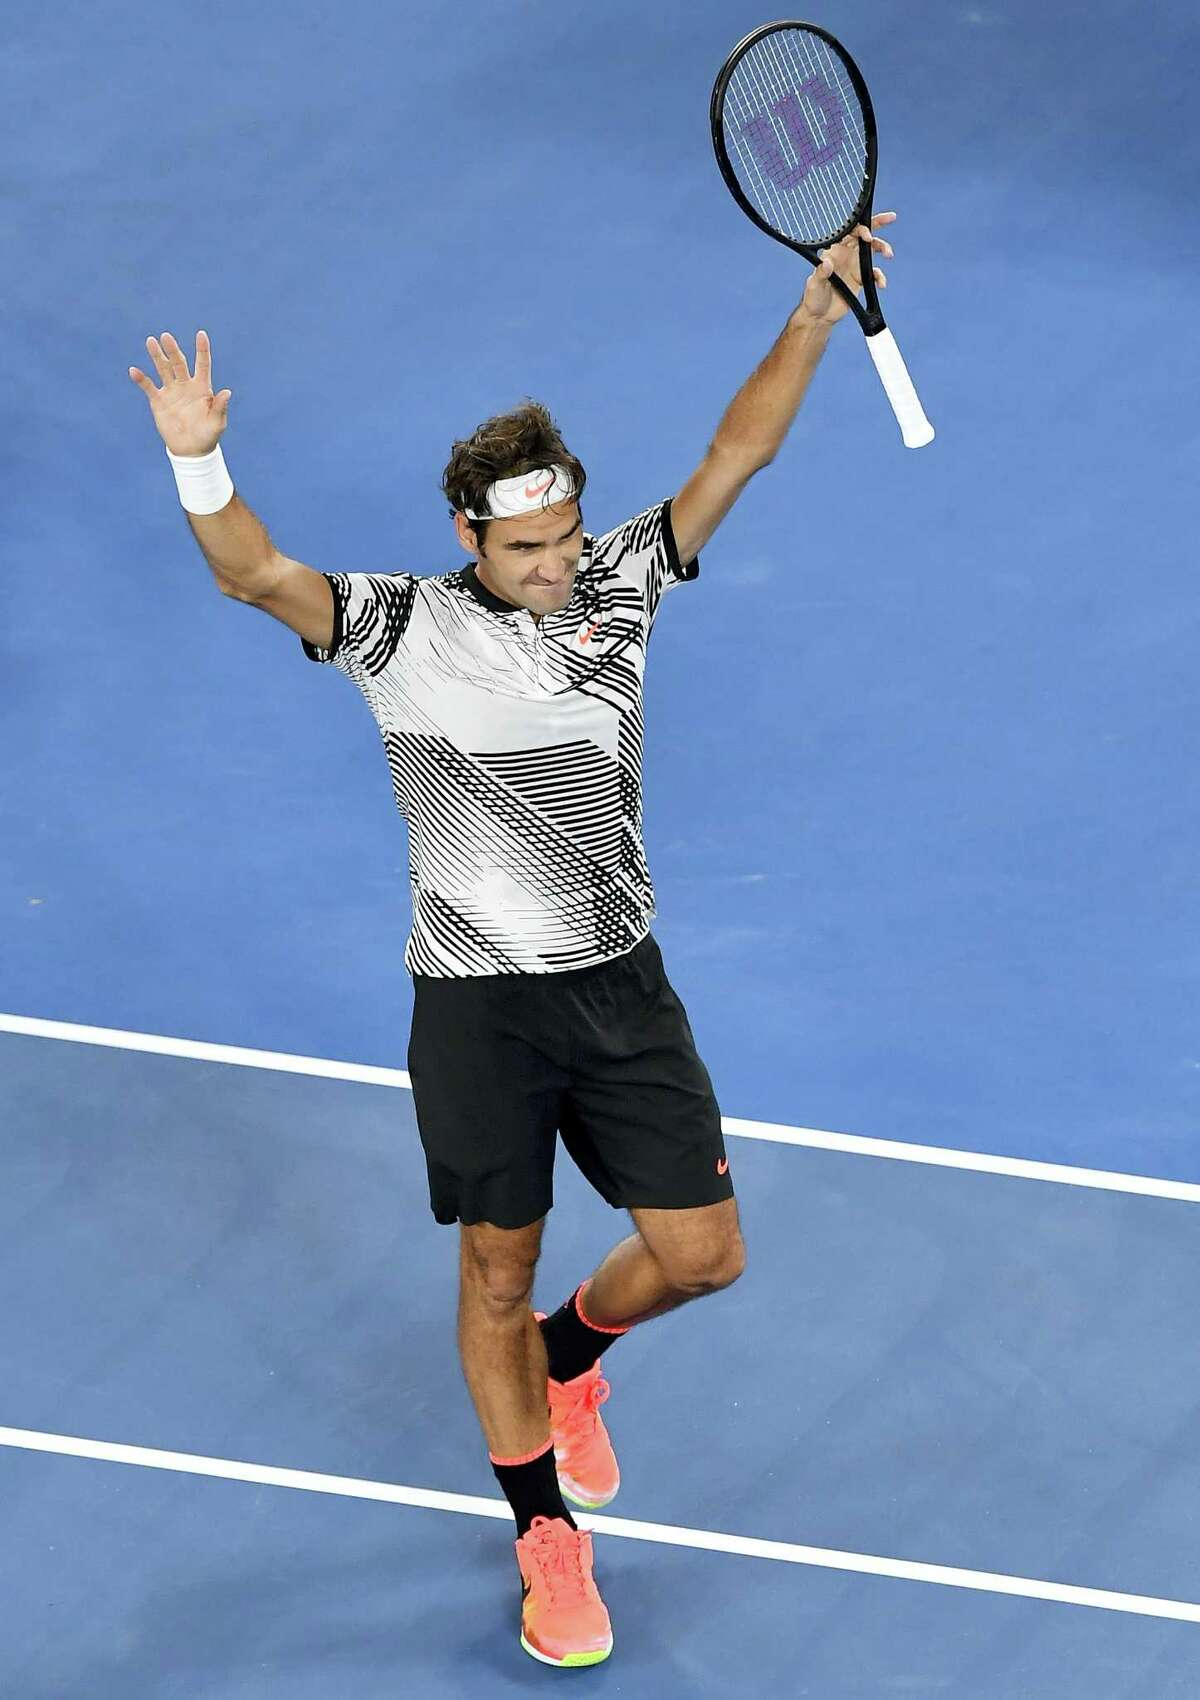 Switzerland's Roger Federer celebrates after defeating compatriot Stan Wawrinka during their semifinal at the Australian Open tennis championships in Melbourne, Australia on Jan. 26, 2017.